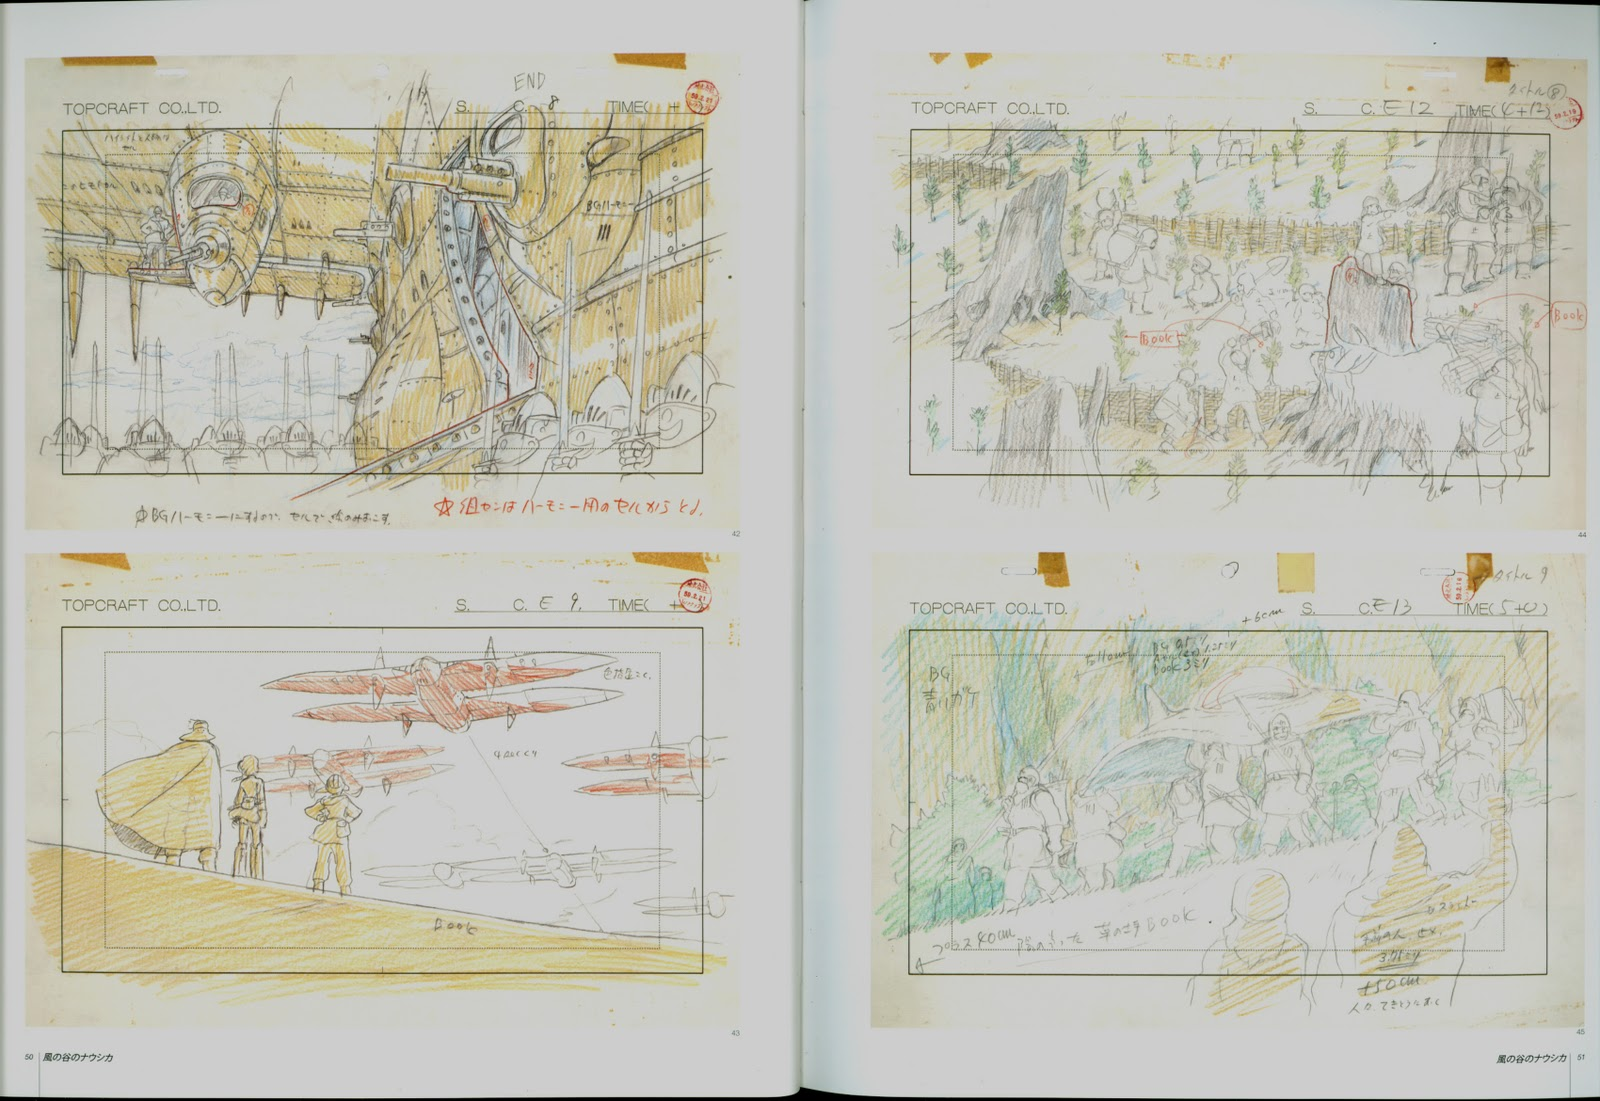 nausicaa_of_the_valley_of_the_wind_concept_art_storyboard_09.jpg